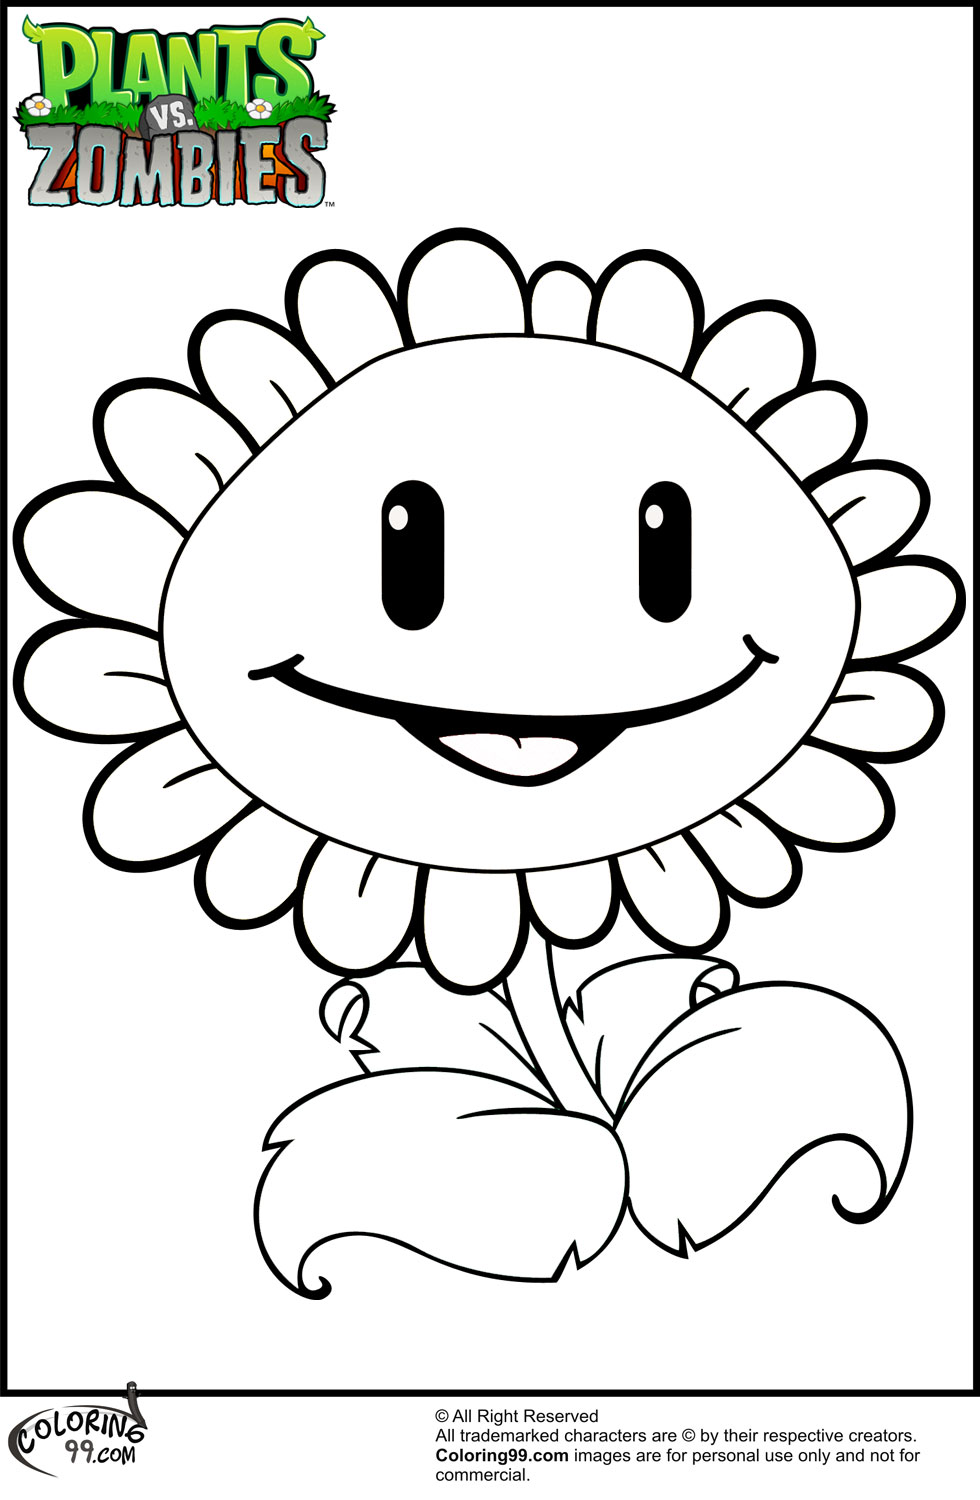 980x1500 Excellent Ssuivx At Plants Vs Zombies Coloring Pages On With Hd